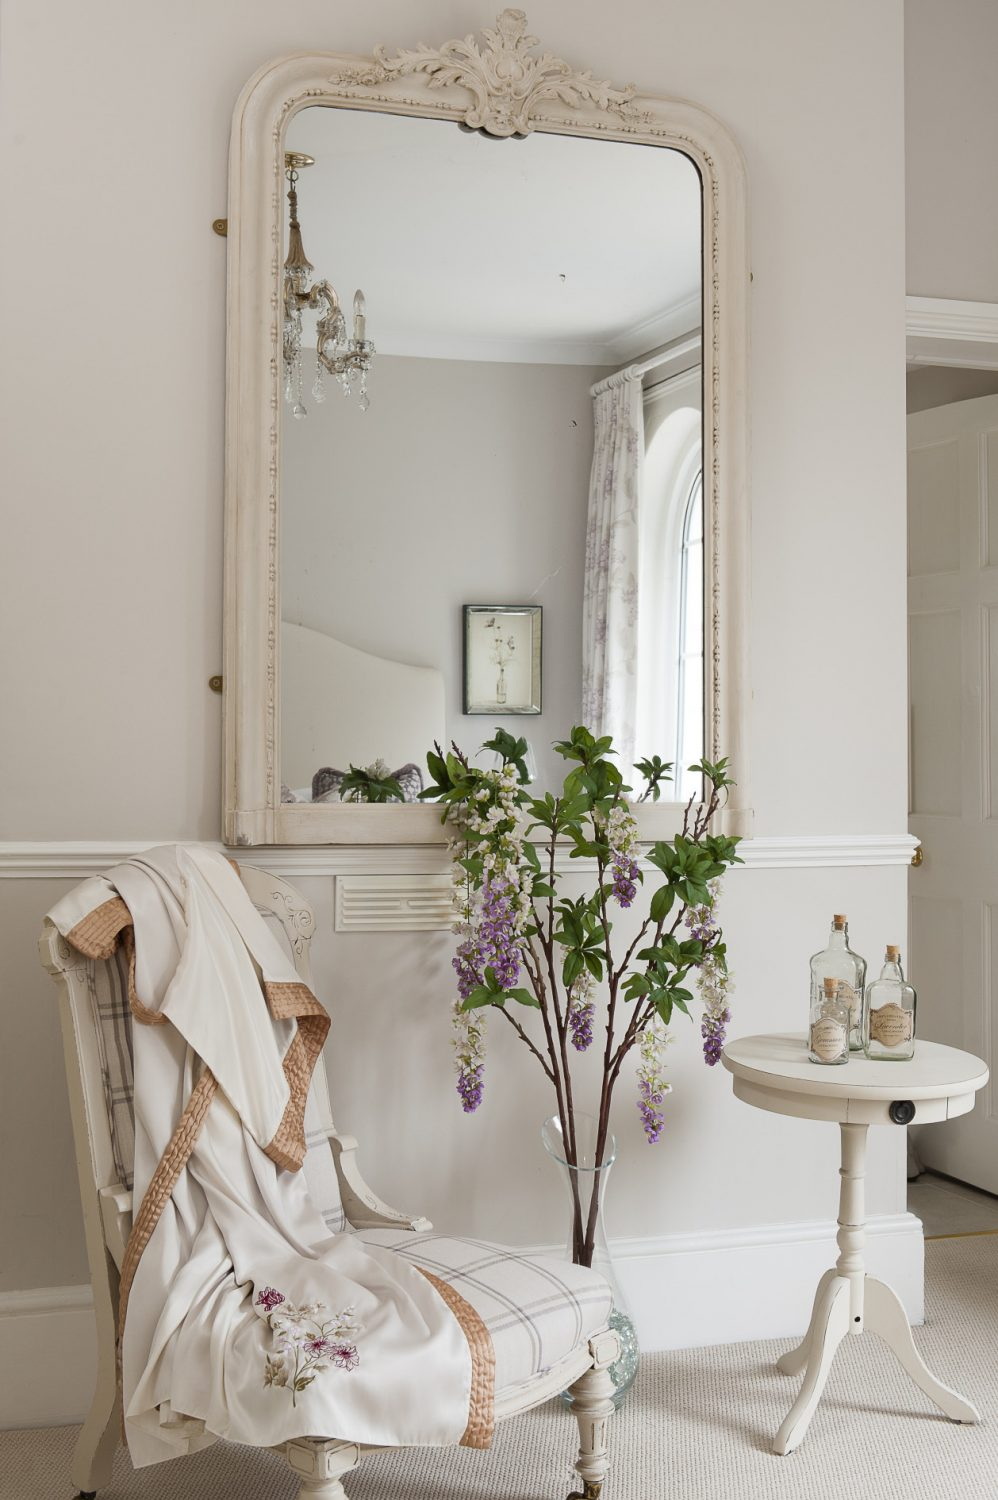 A large mirror, chair and occasional table